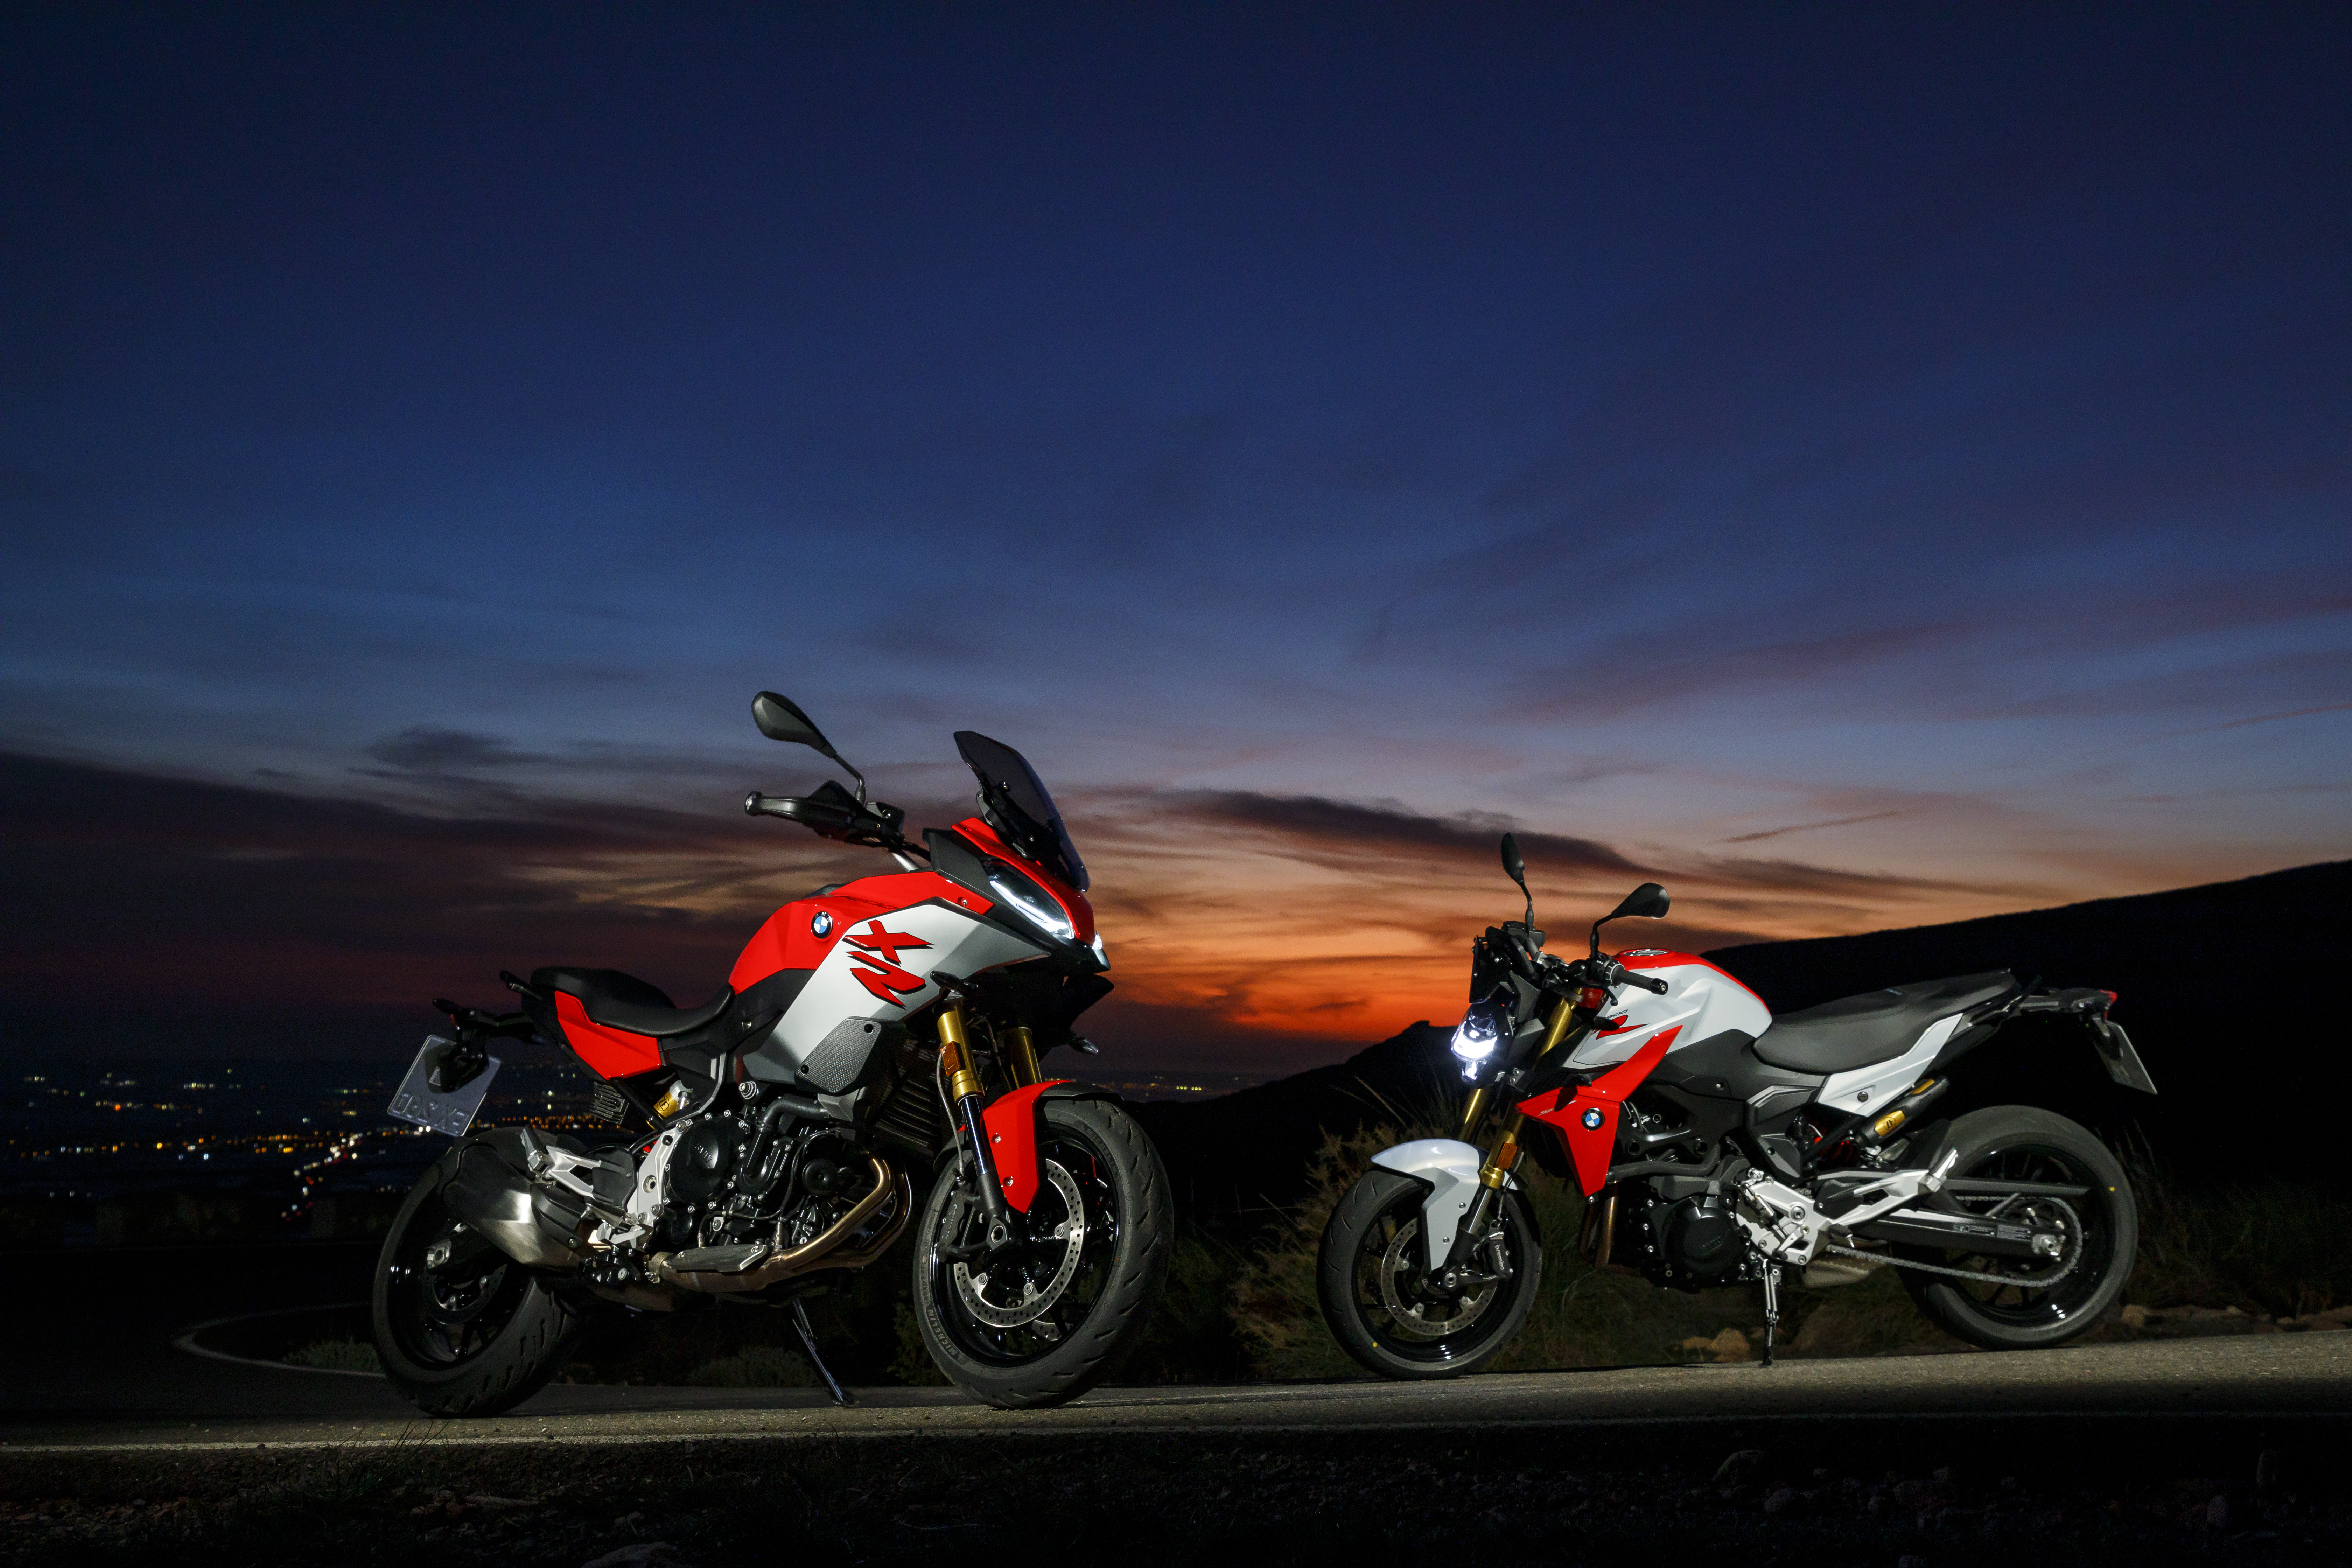 2020 BMW F900R and F900XR Launched In Malaysia - Starts At RM 62,500